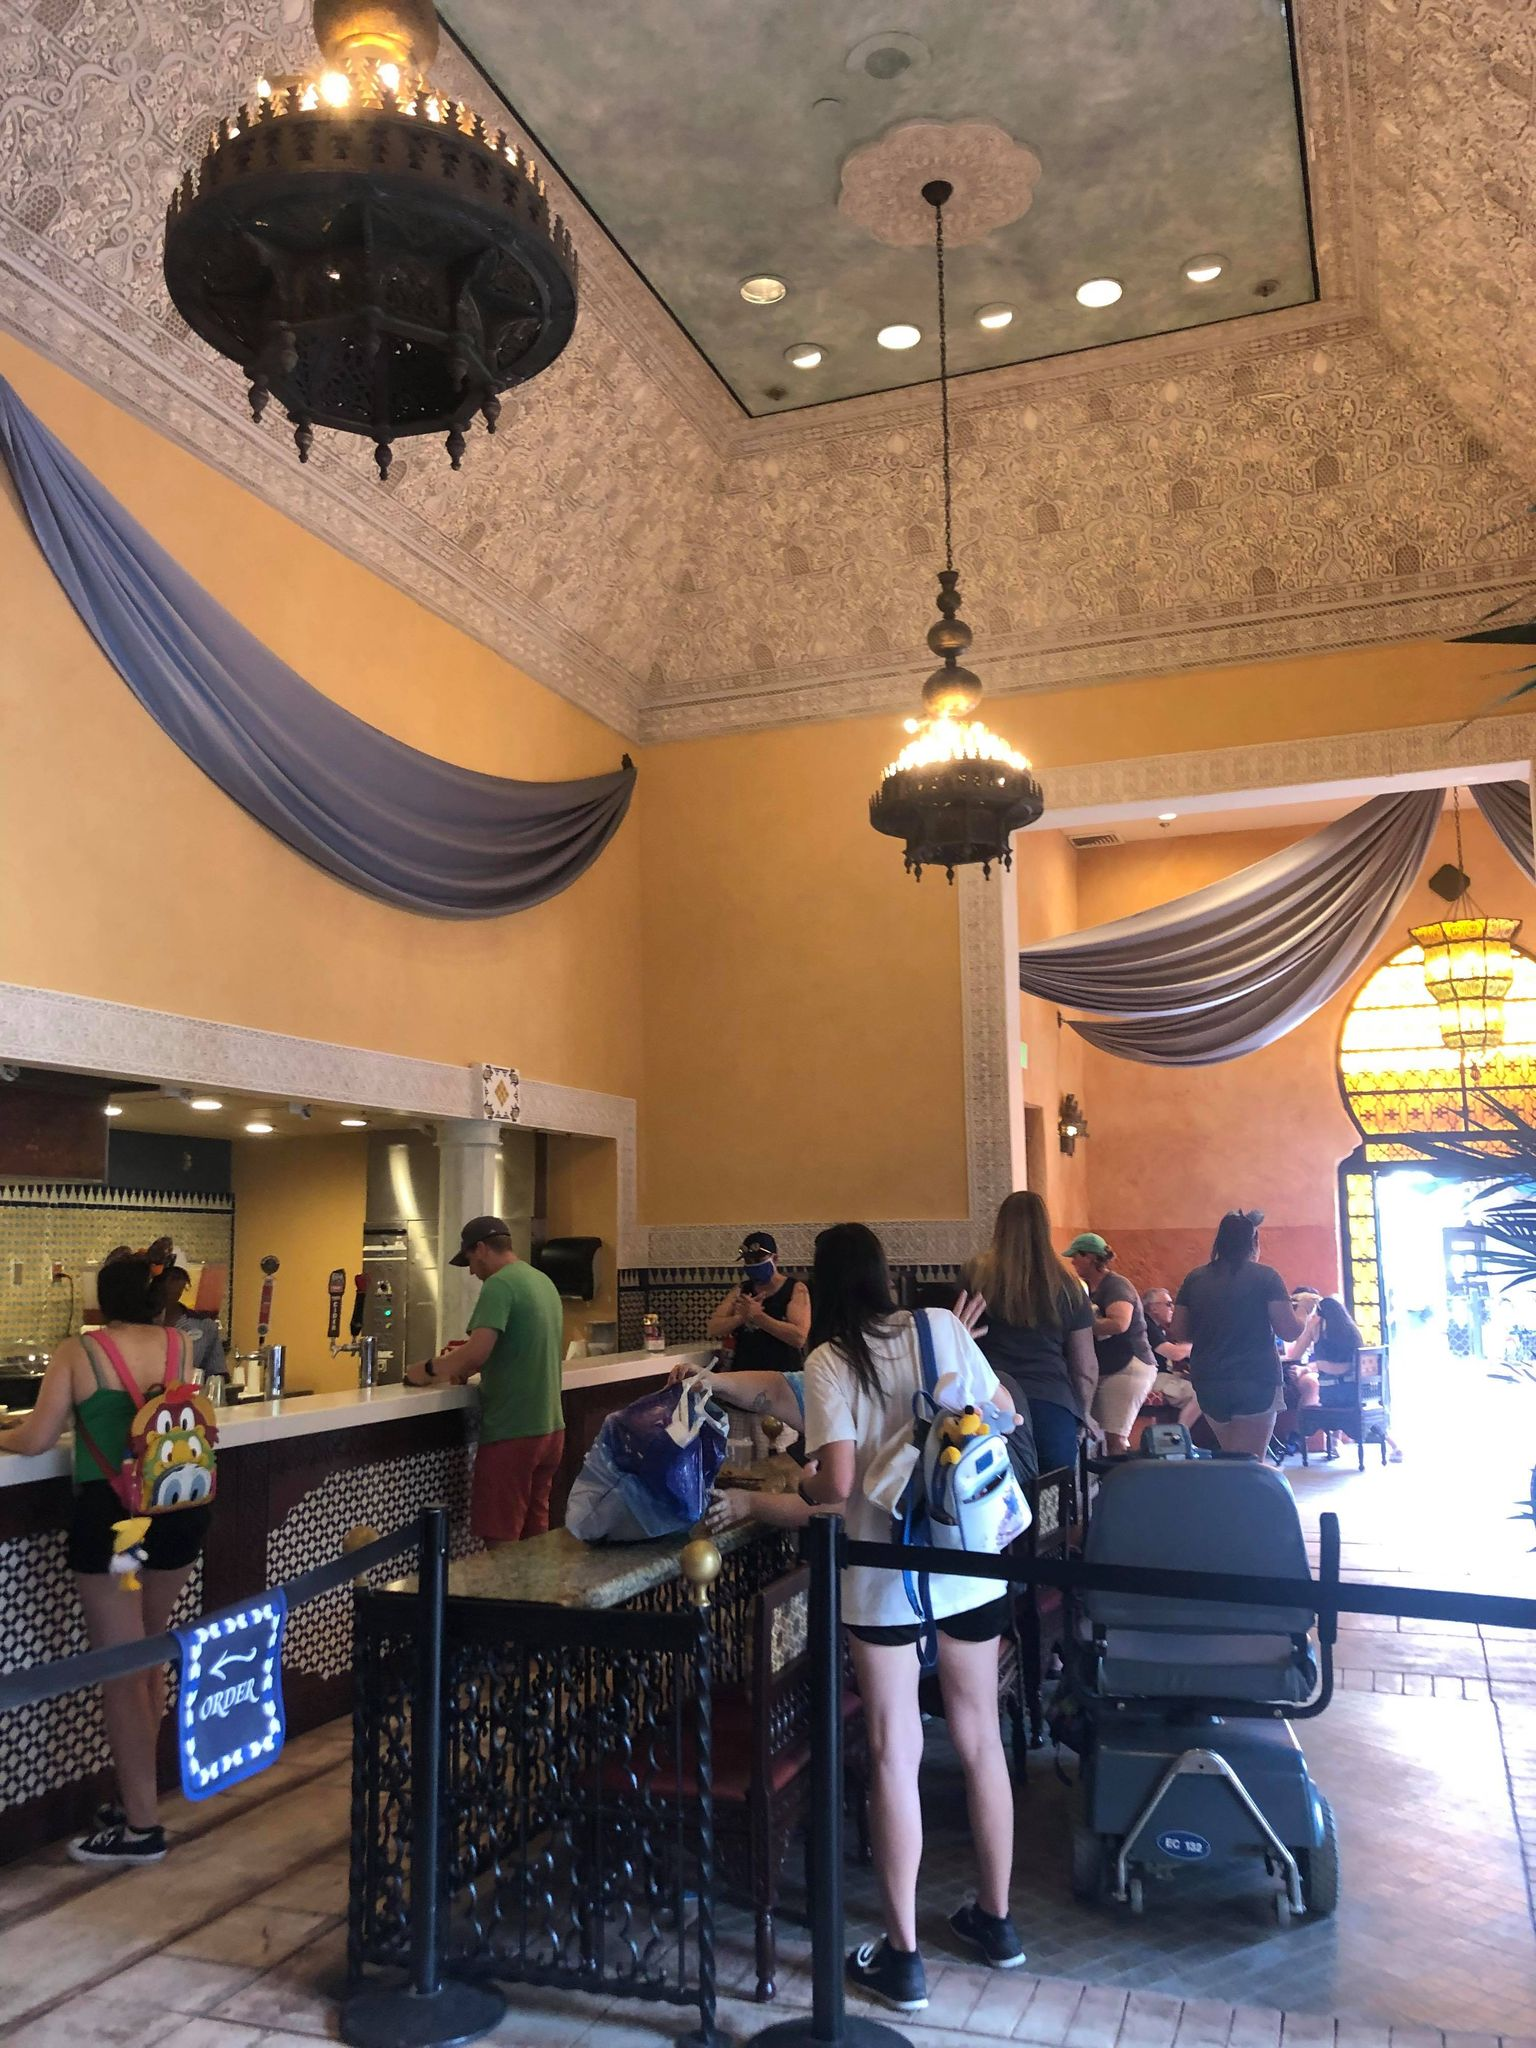 Tangierine Café: Flavors of the Medina Opens for Epcot Food & Wine Festival 6